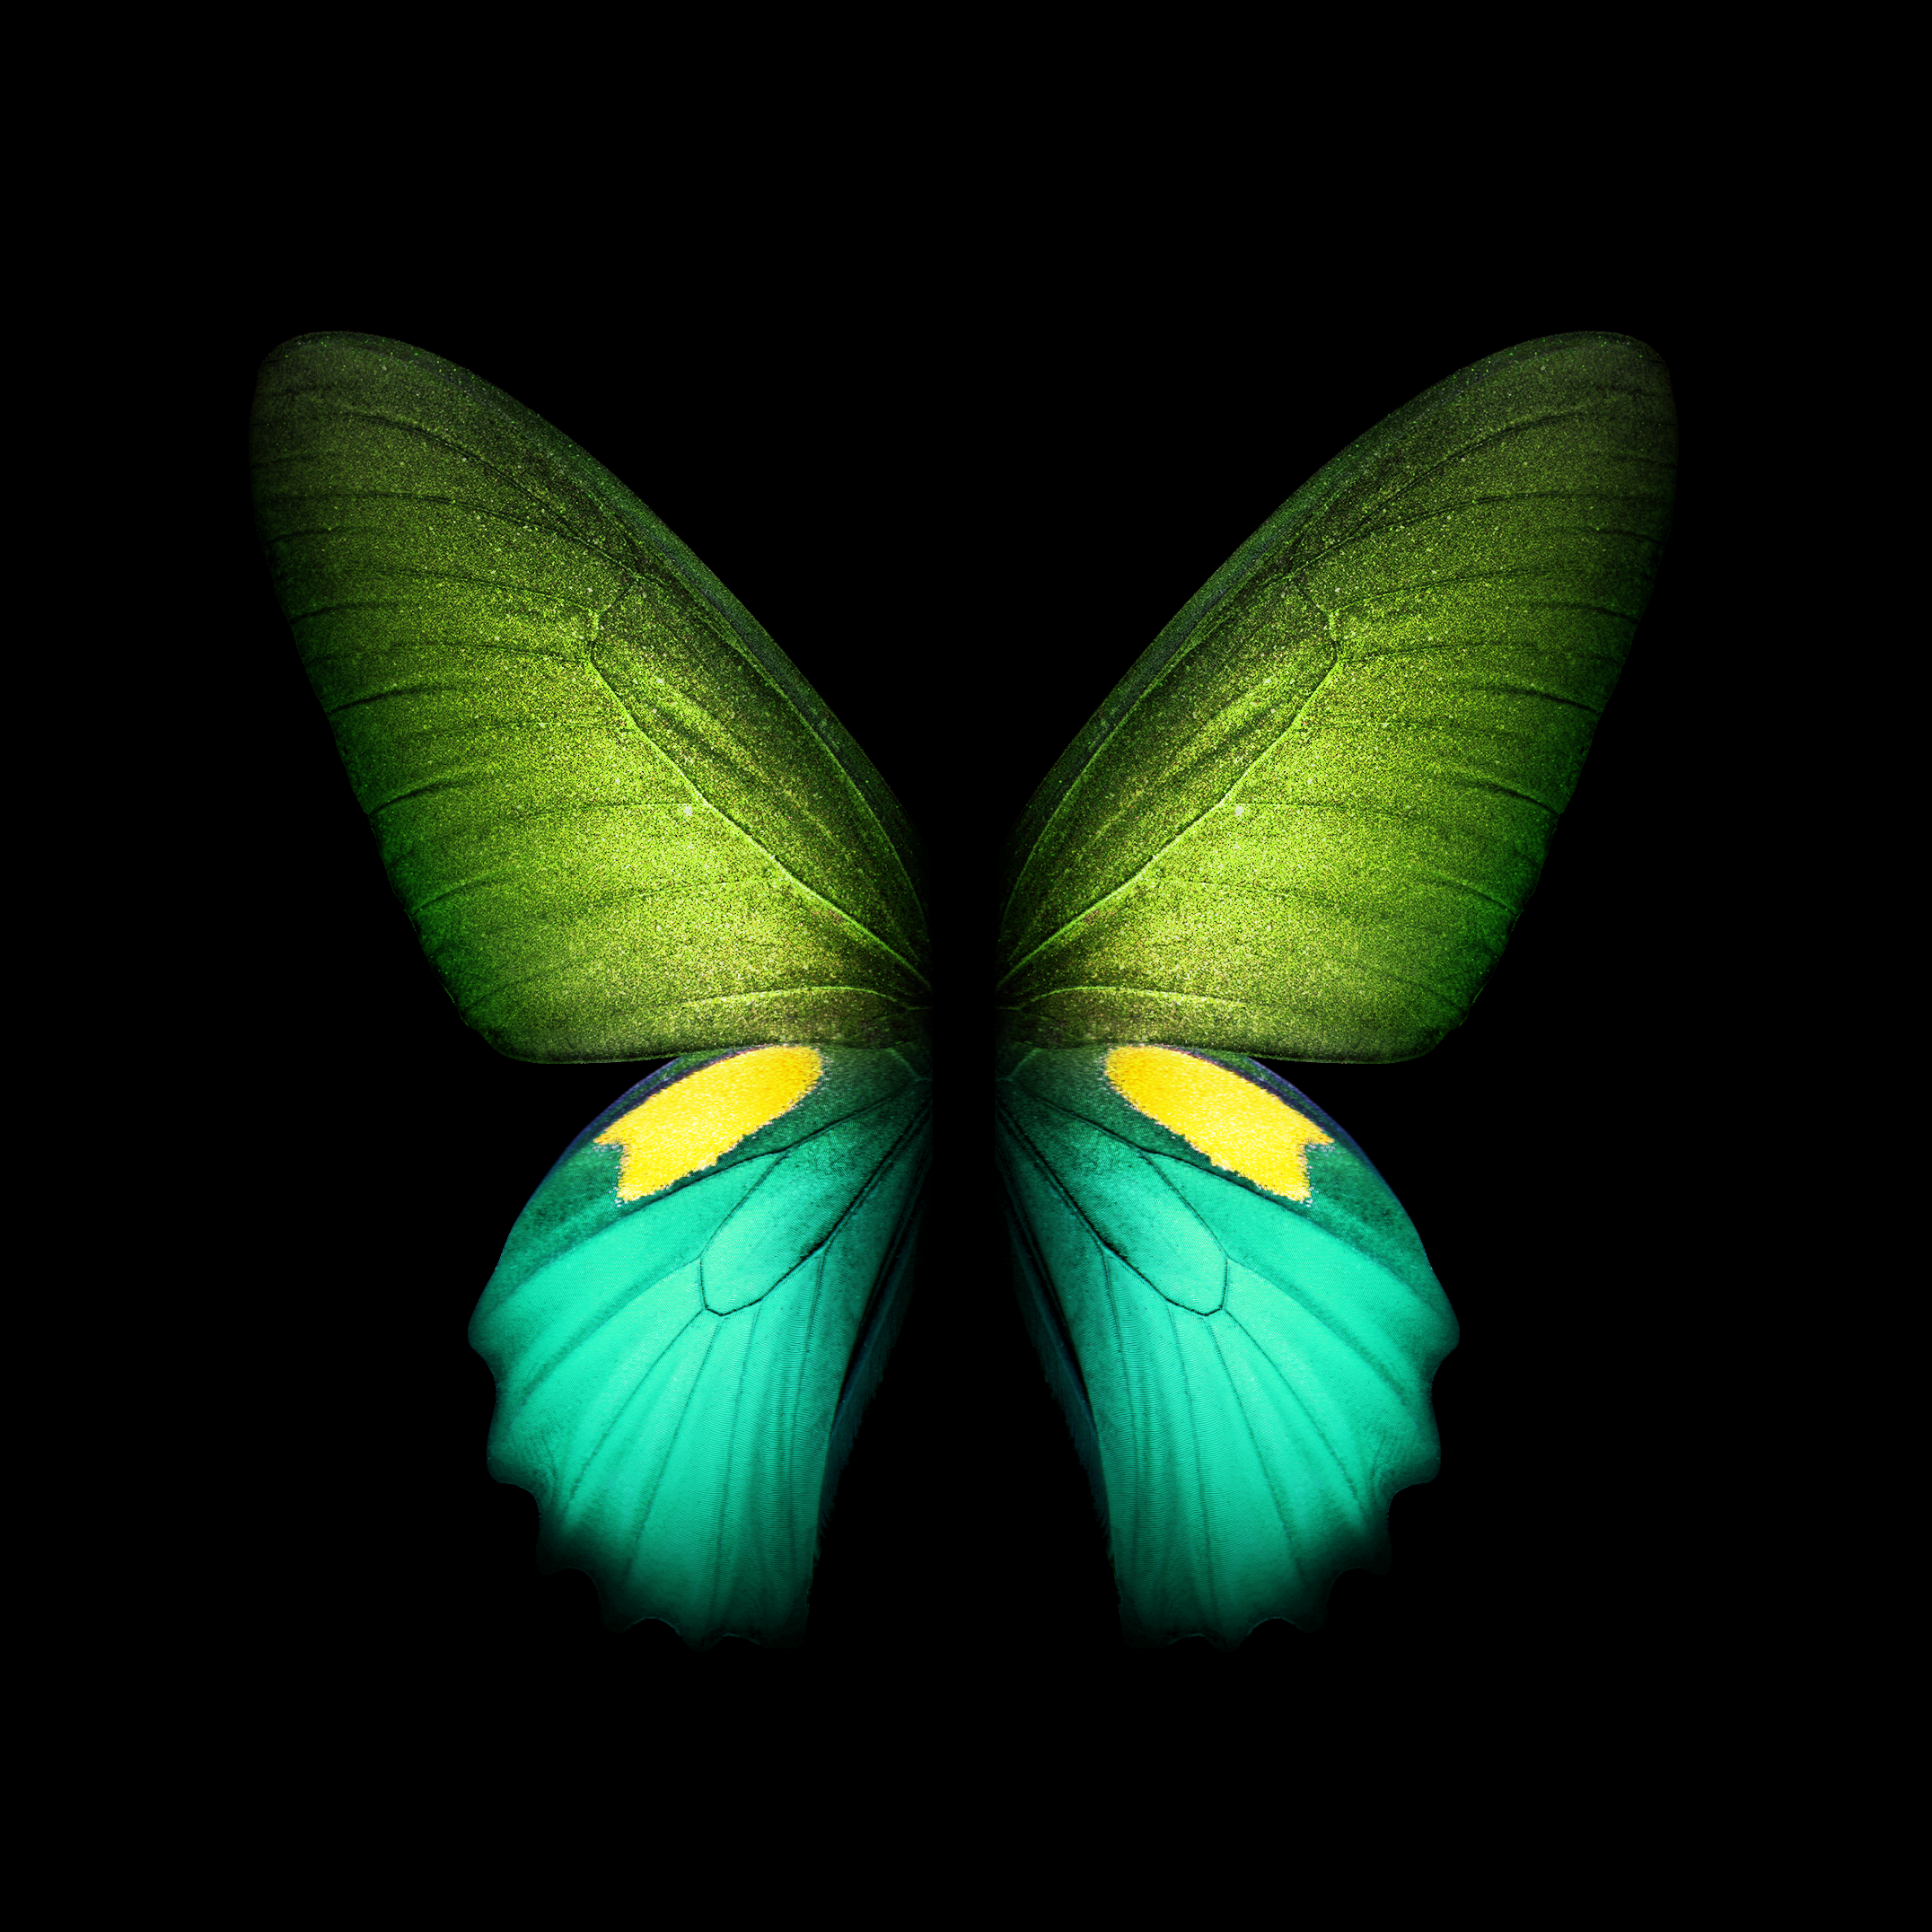 Samsung Galaxy Fold Wallpapers   Top Samsung Galaxy Fold 2152x2152